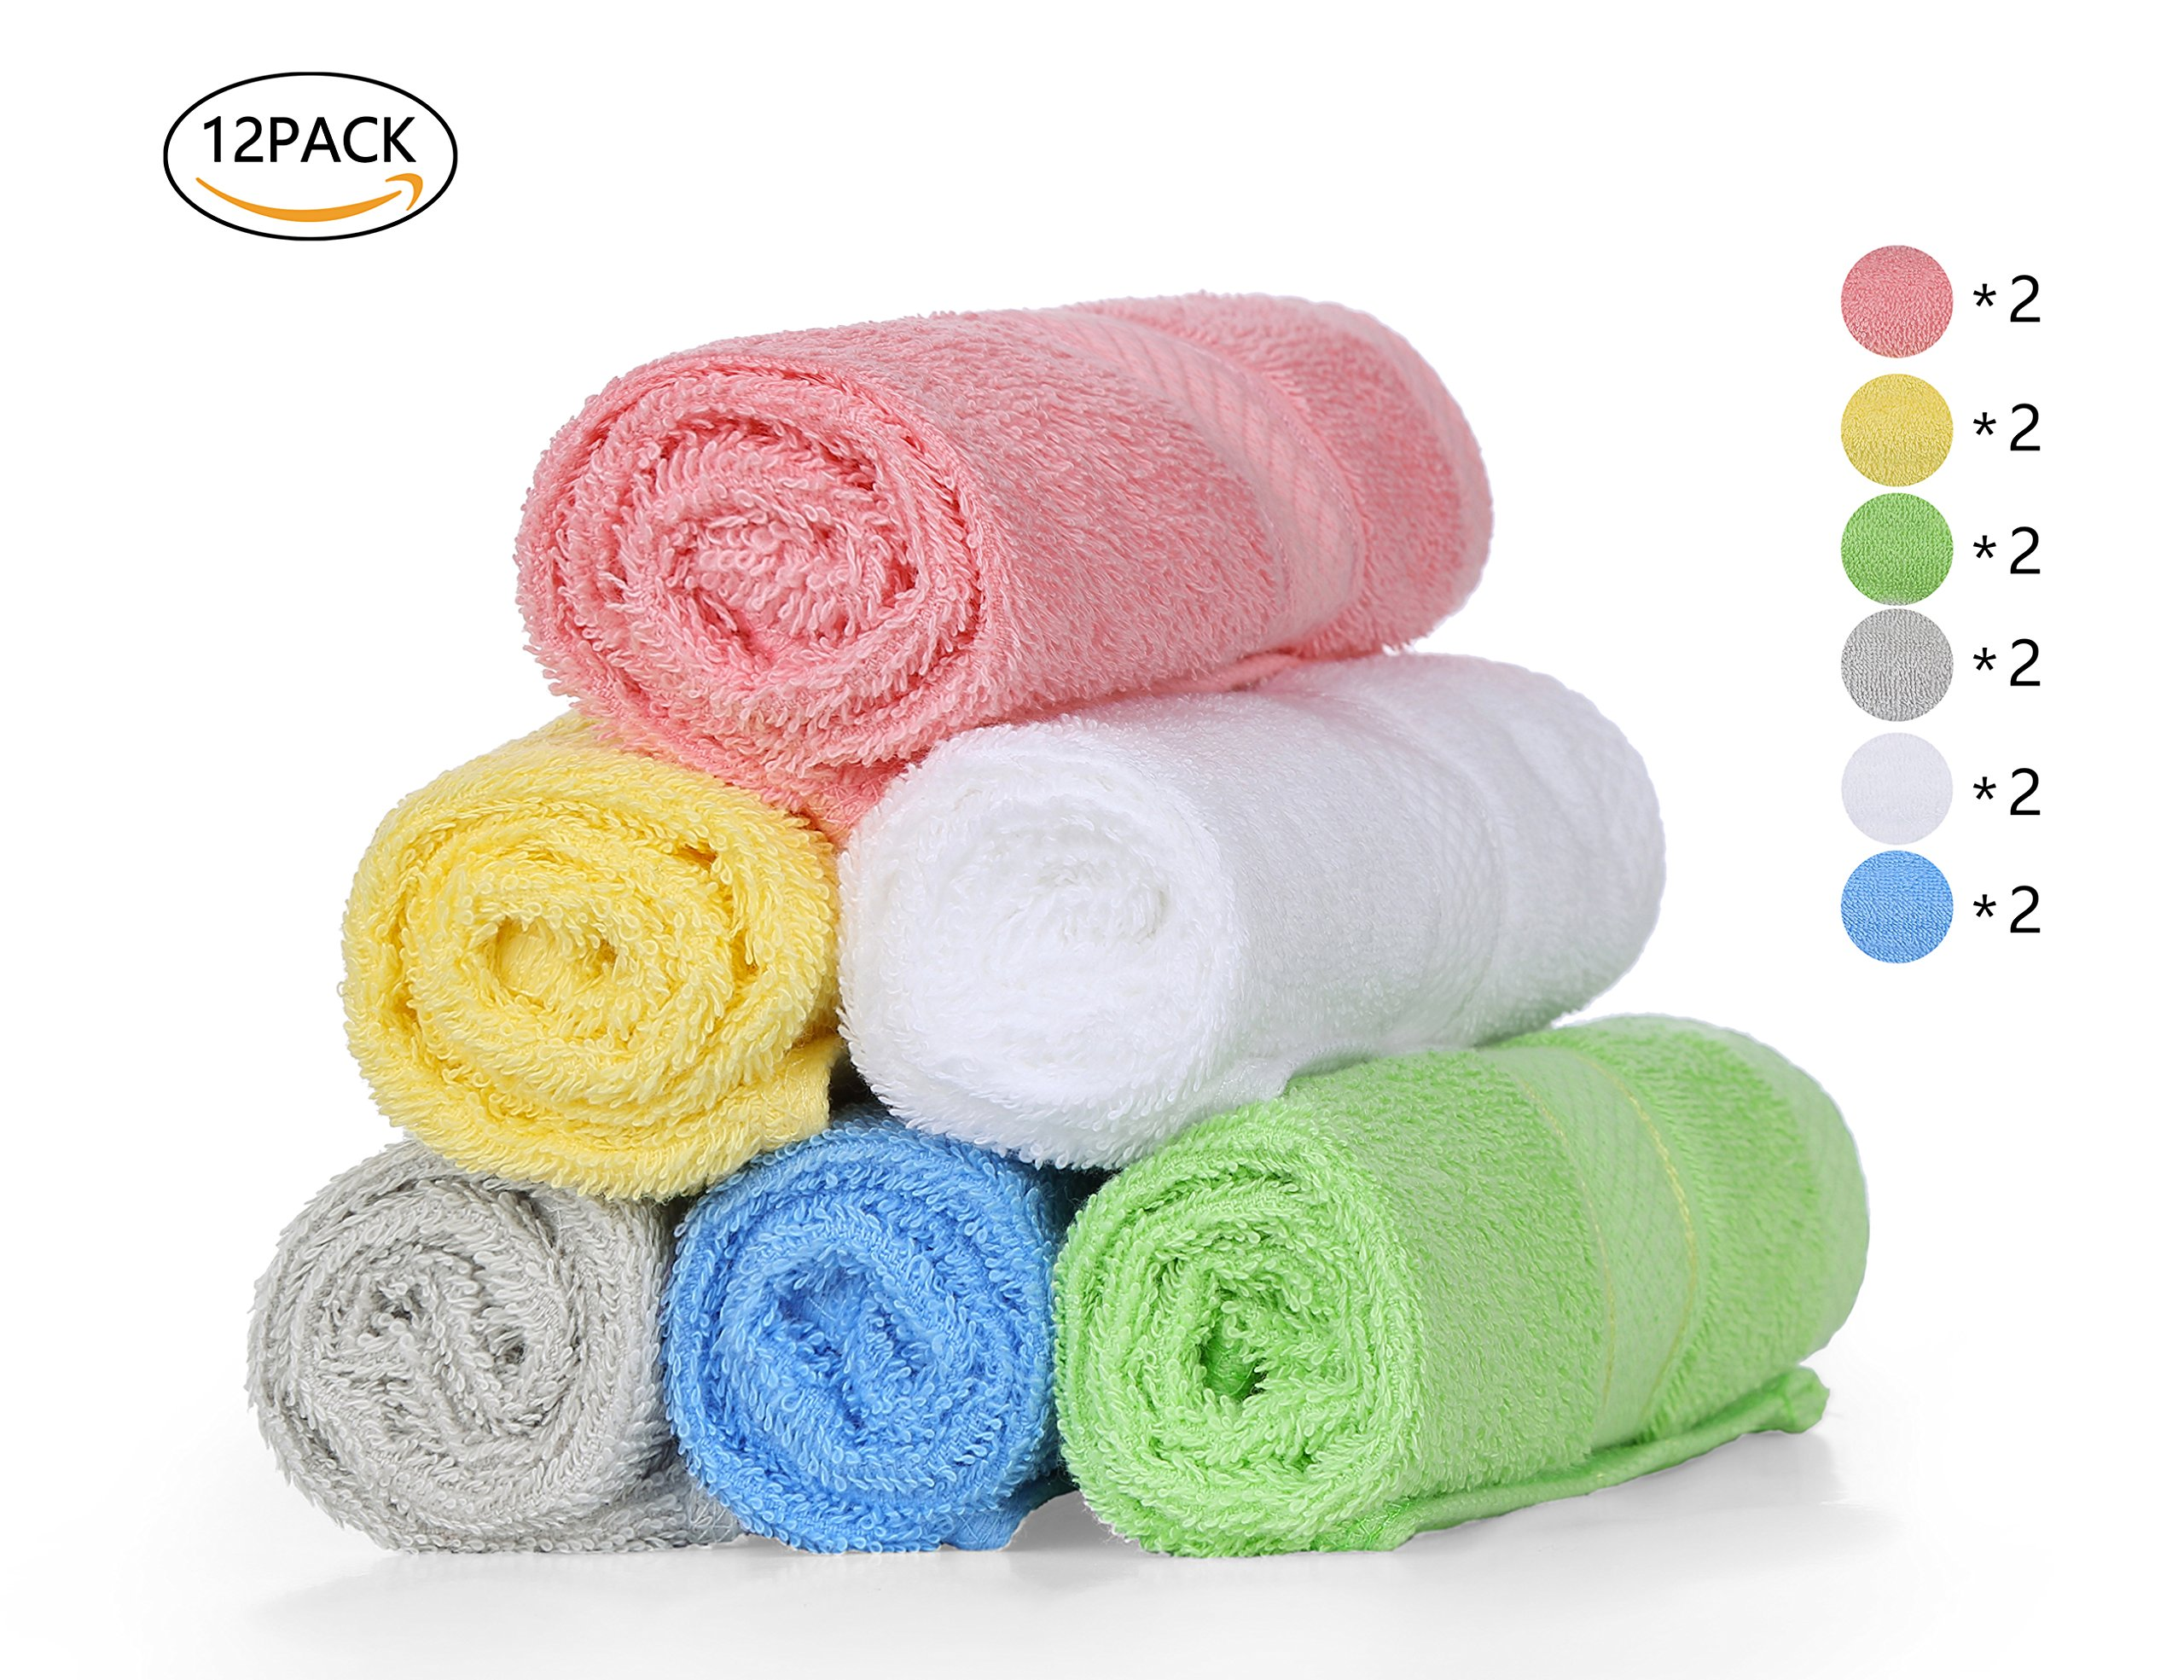 Chama Premium Luxury 100% Cotton Basic Baby Hotel Kitchen Washcloths Towels 13''x13'' Inch Face Cloths Towel Set of 12 Pack